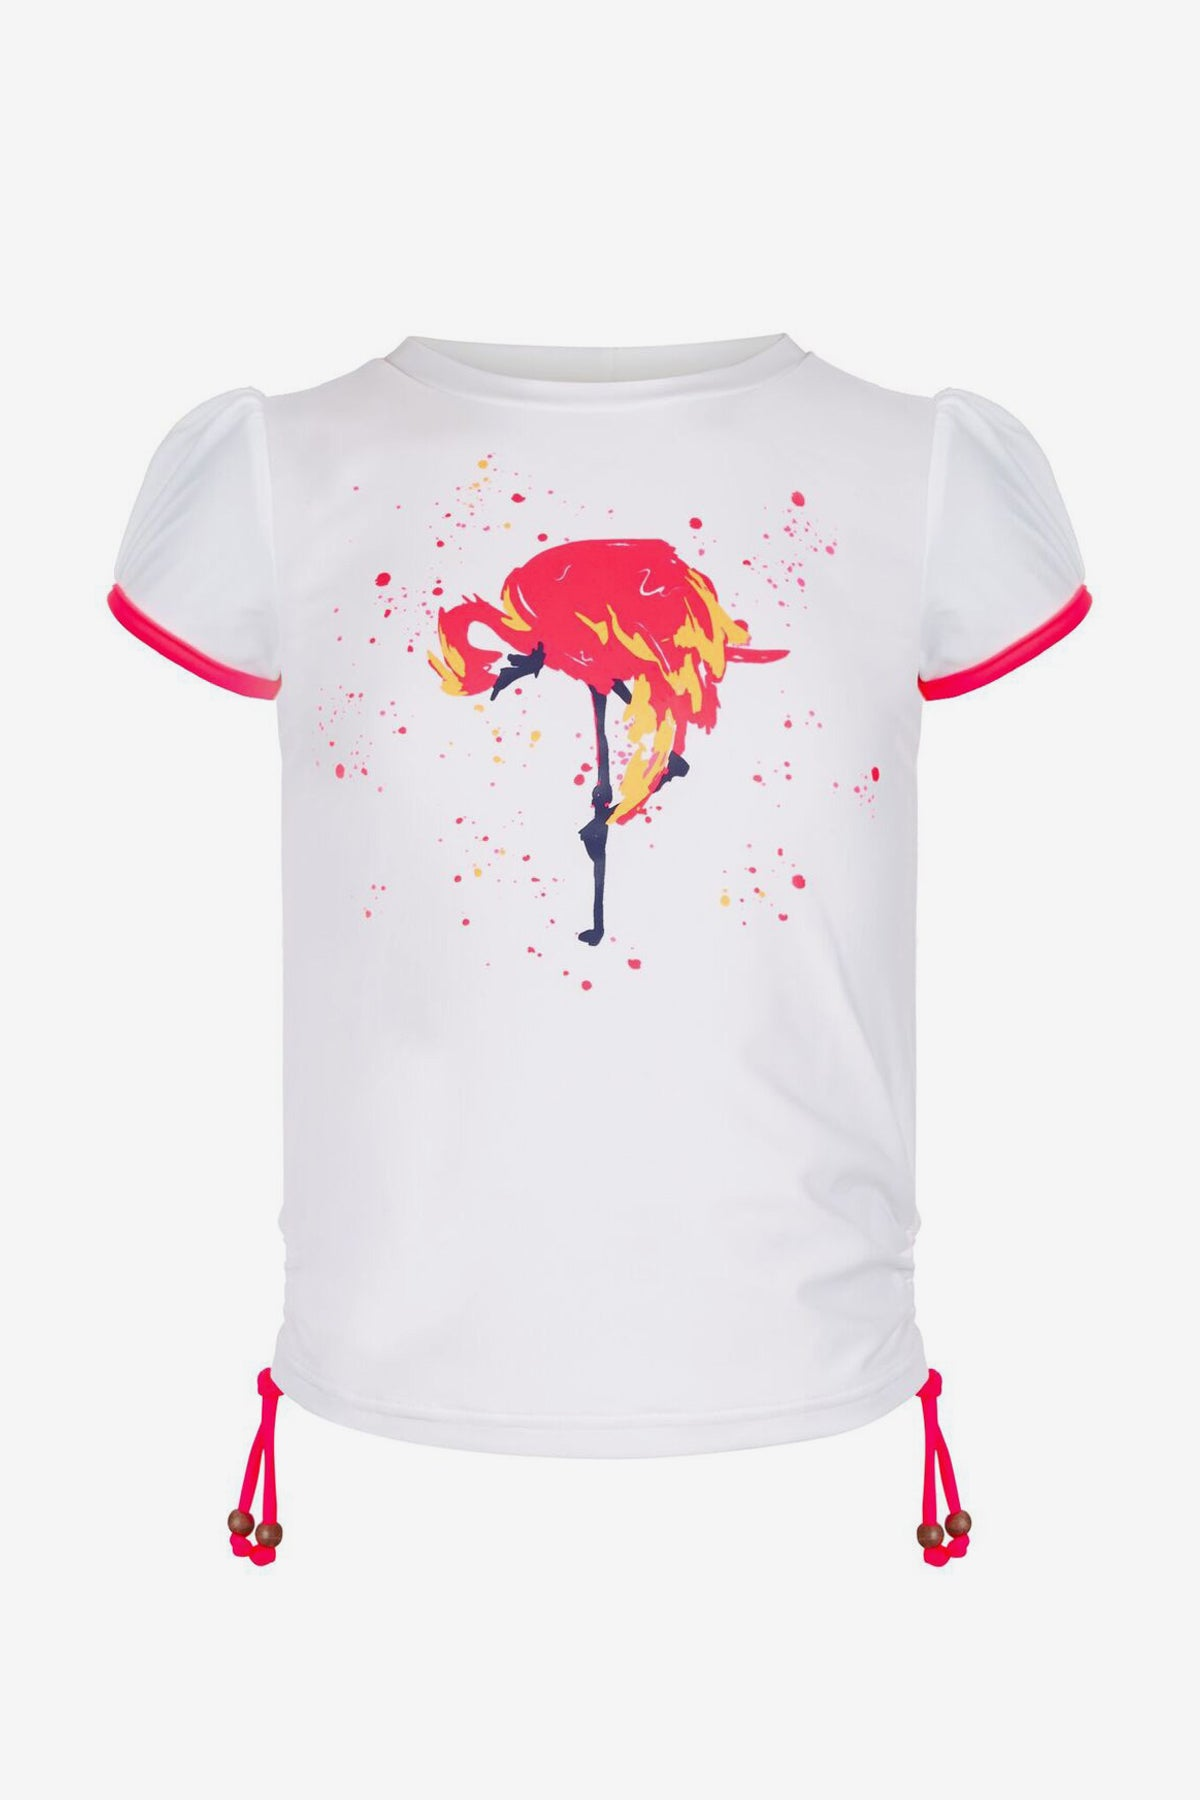 Sunuva Girls Flamingo Rashguard